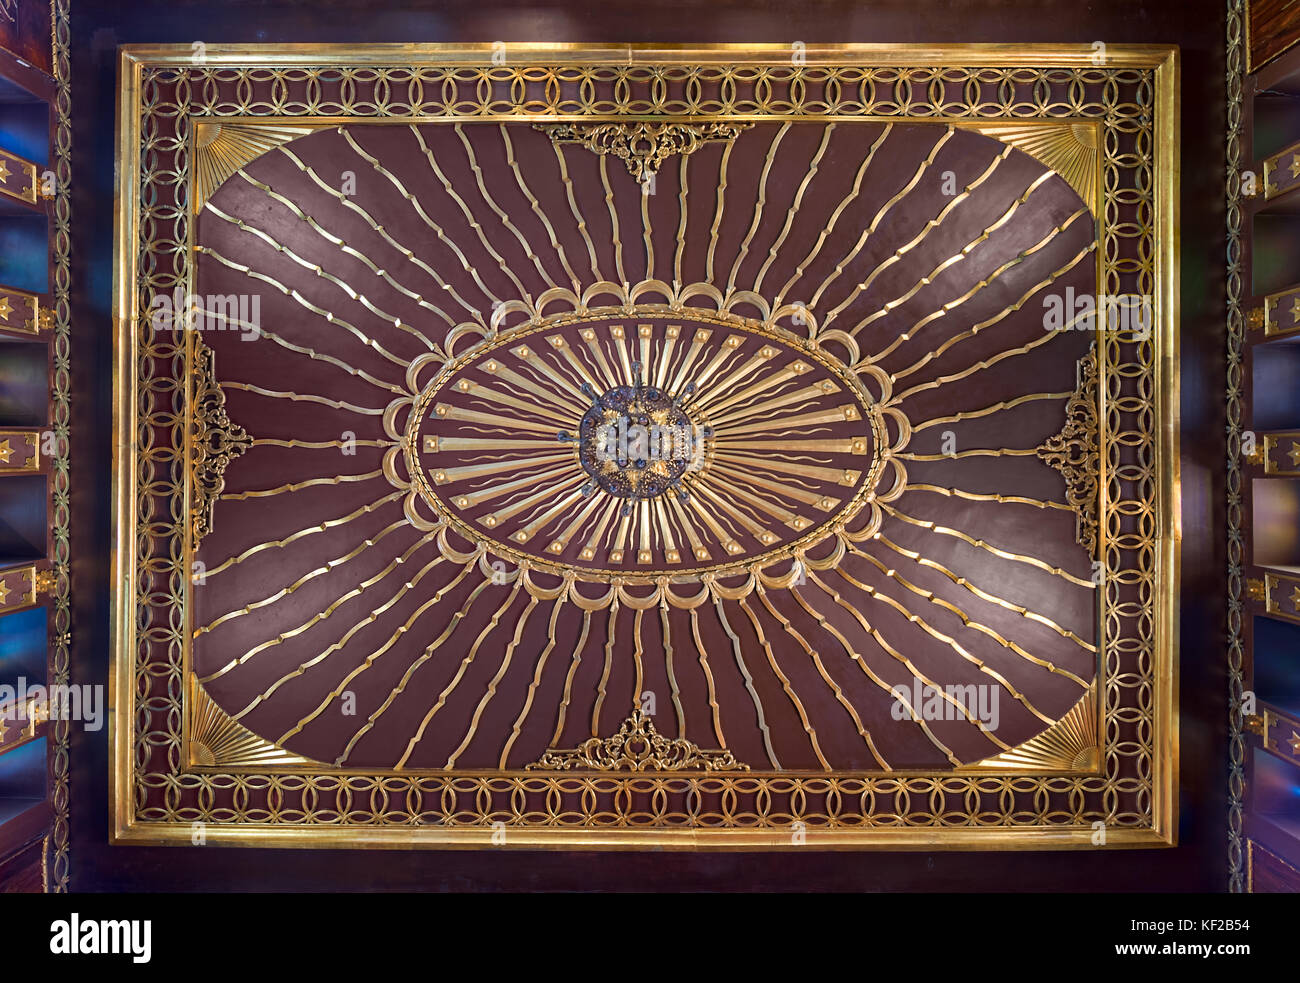 Wooden golden ornate ceiling with design based on sun rays inspired by the old flag of the ottoman empire at the - Stock Image